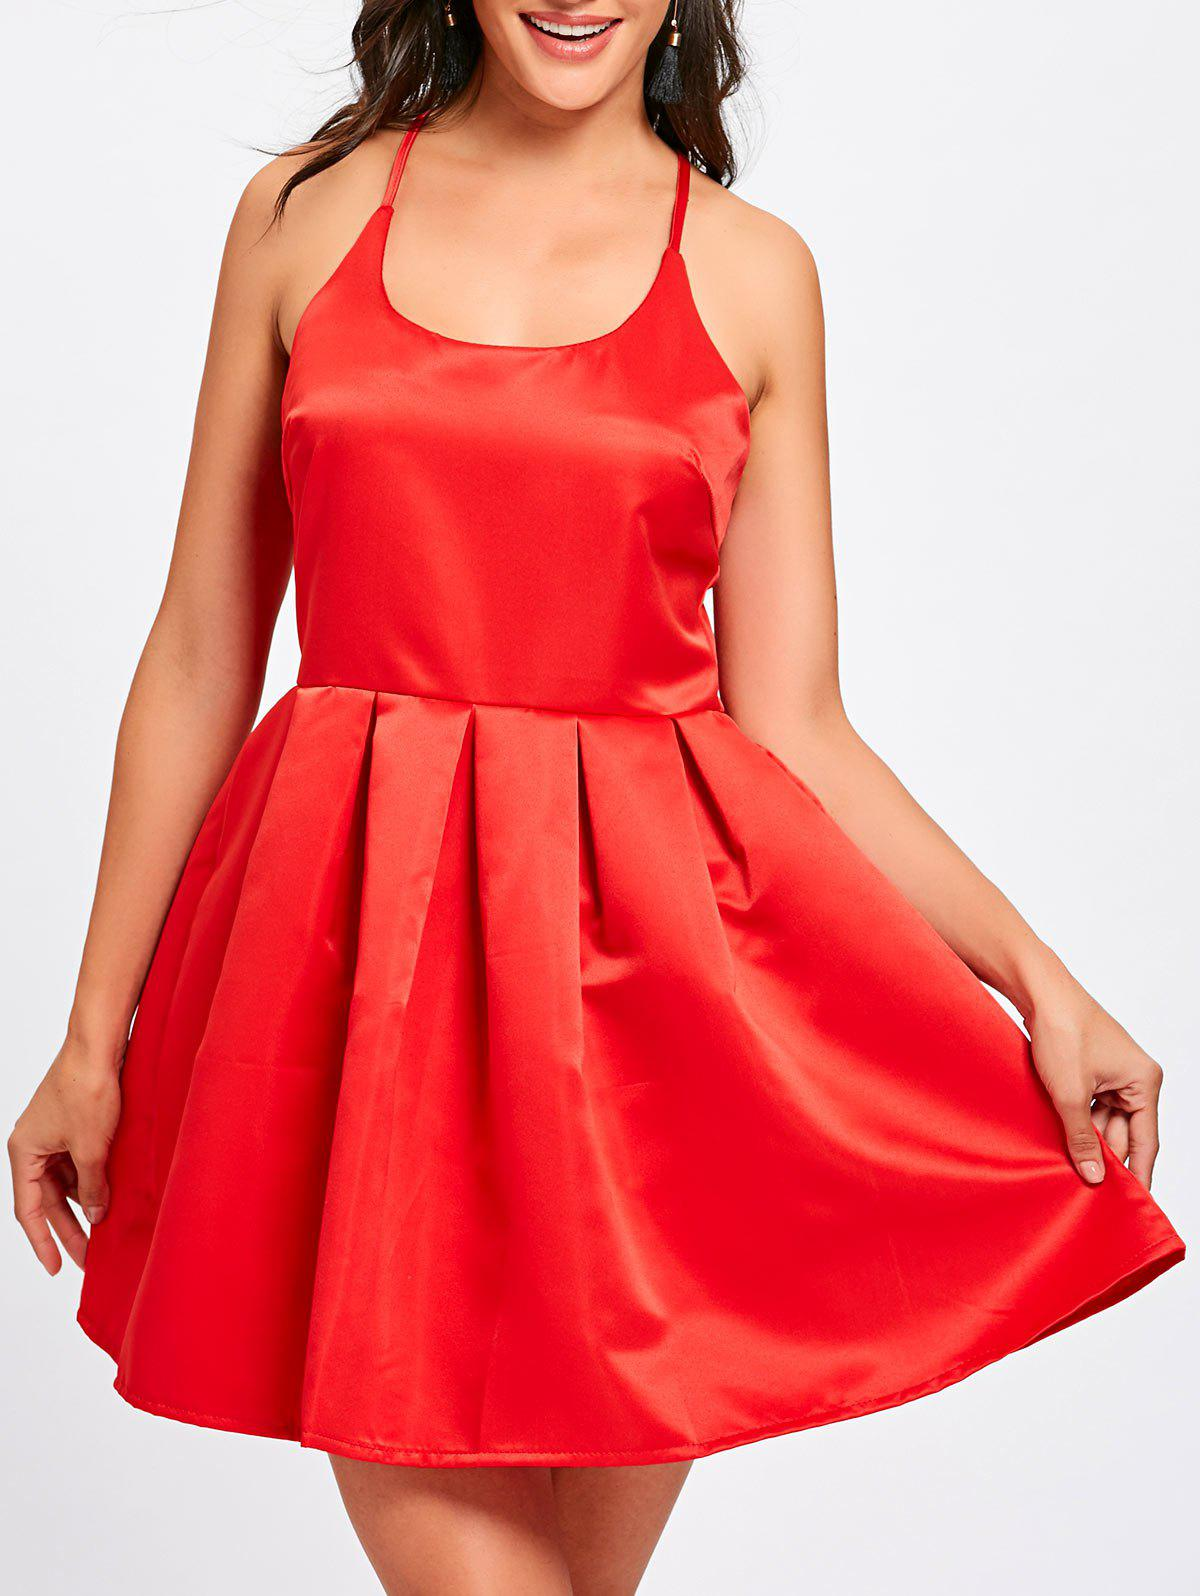 Spaghetti Strap Backless Flare Mini Dress - RED XL